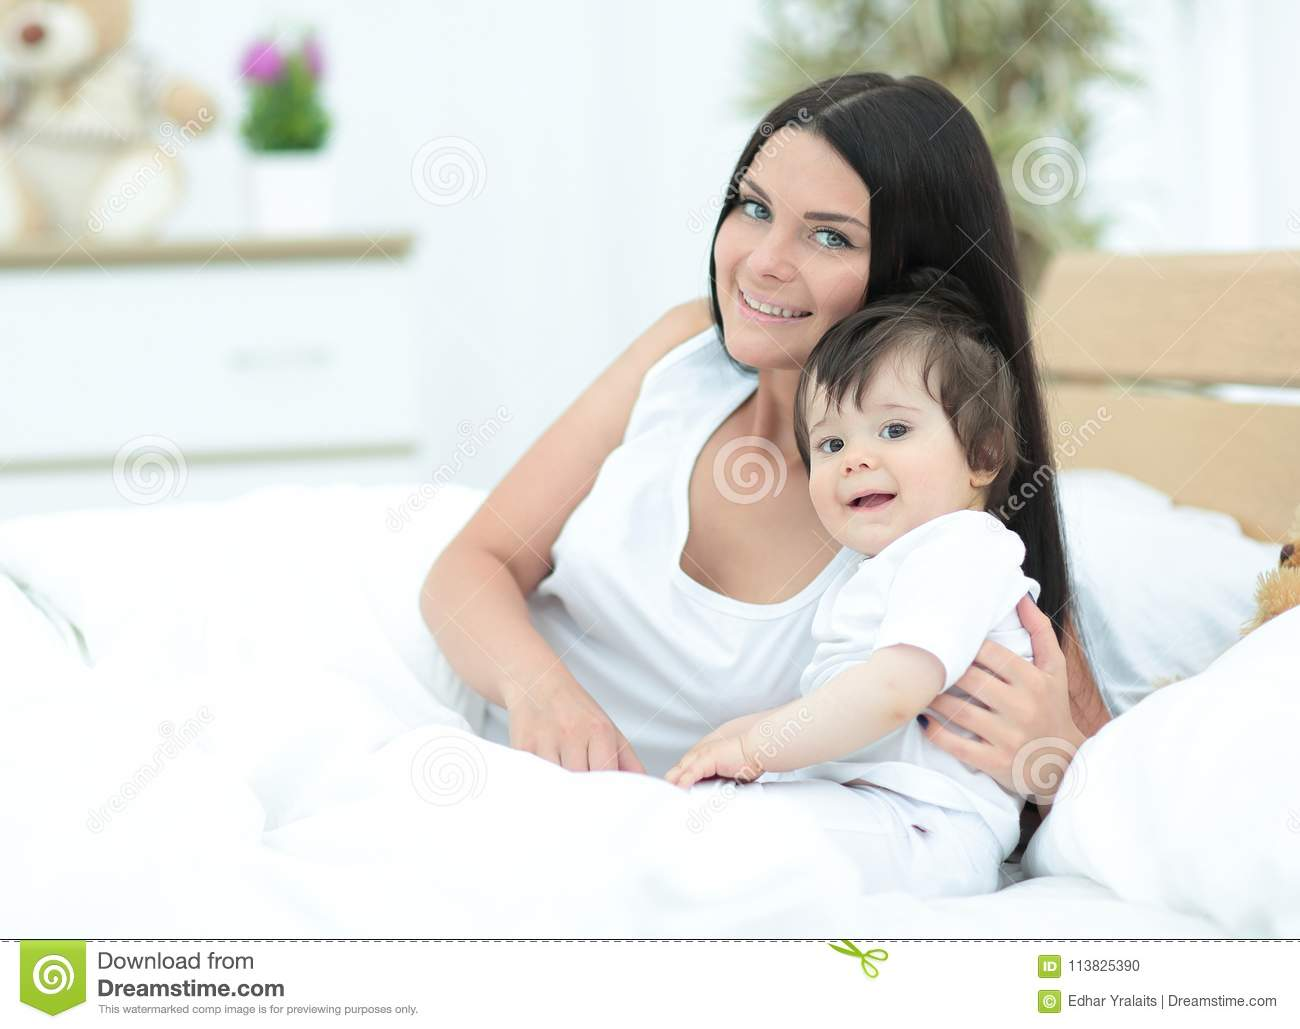 Beautiful young mother with a baby lying in bed and smiling